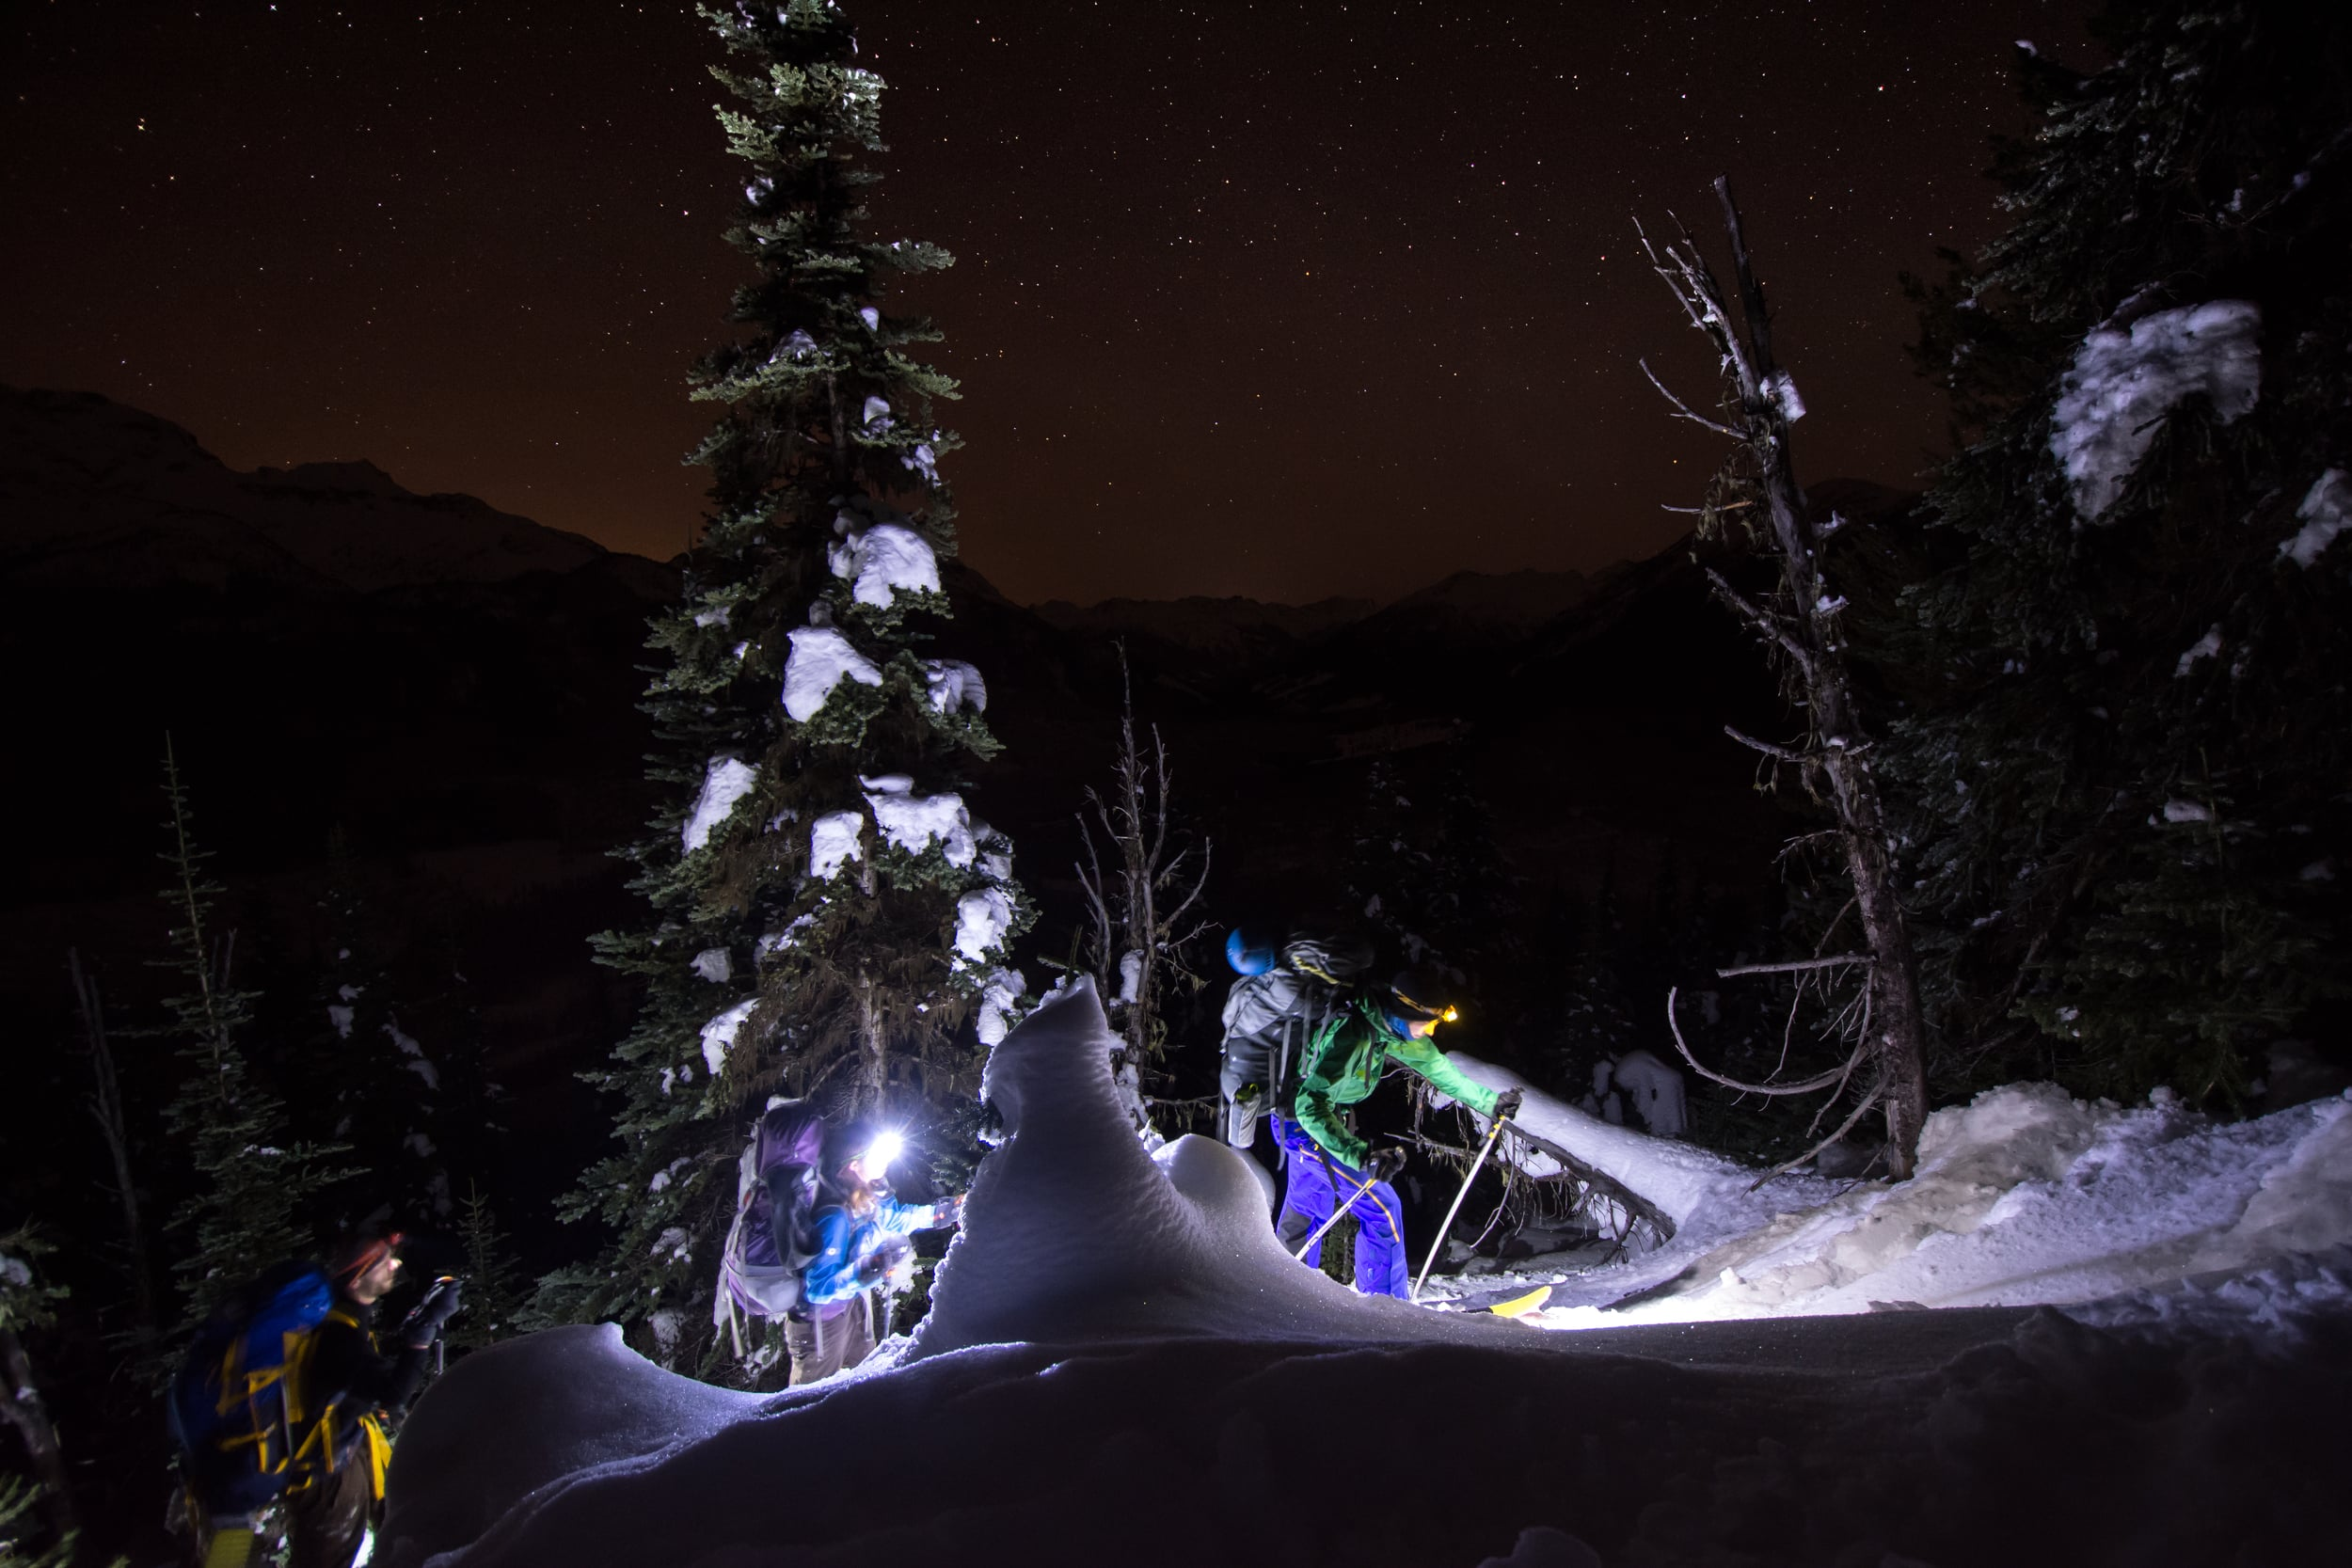 Laurent, Janelle, and Steve make their way up the dark skin track, Rohr Ridge, British Columbia, Dec 2015.